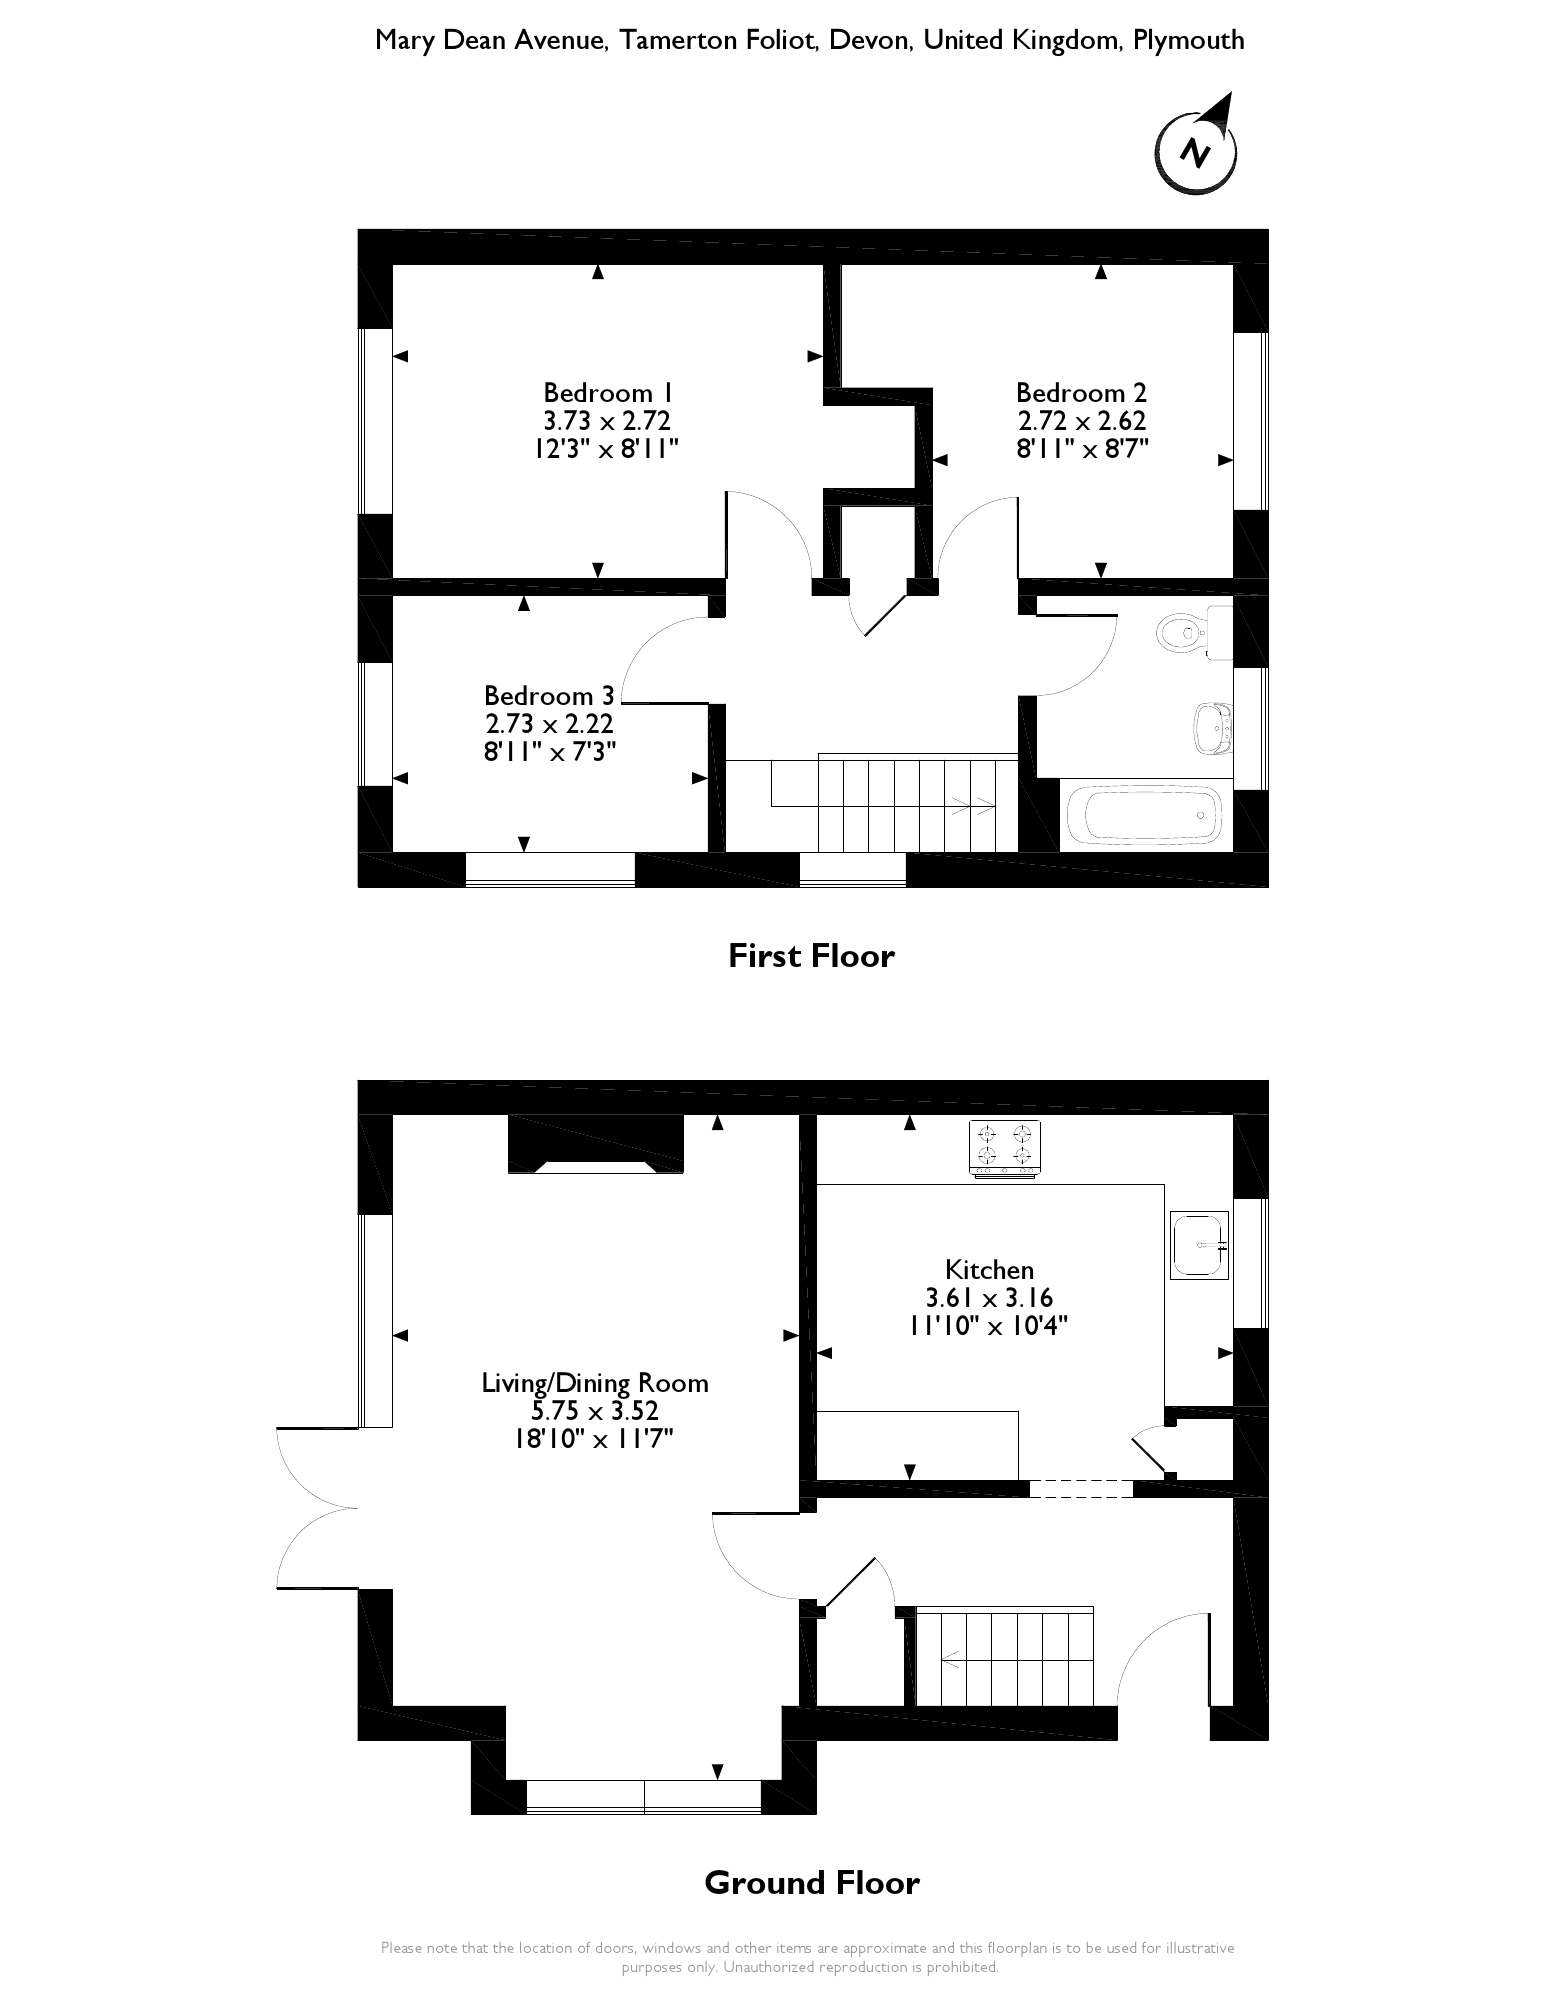 Mary Dean Avenue, Plymouth, PL5 floor plan